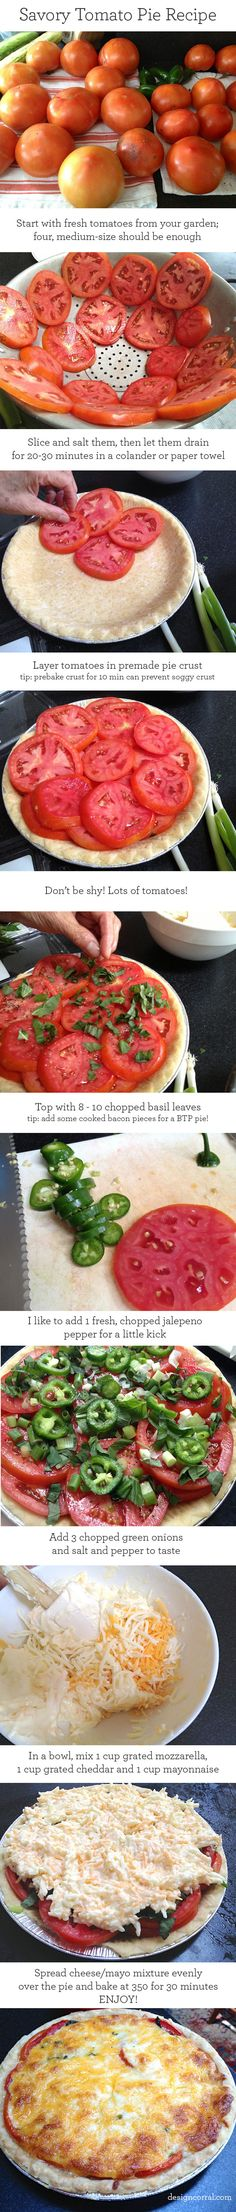 Id only make this for the boyfriend lol I hate tomatoes